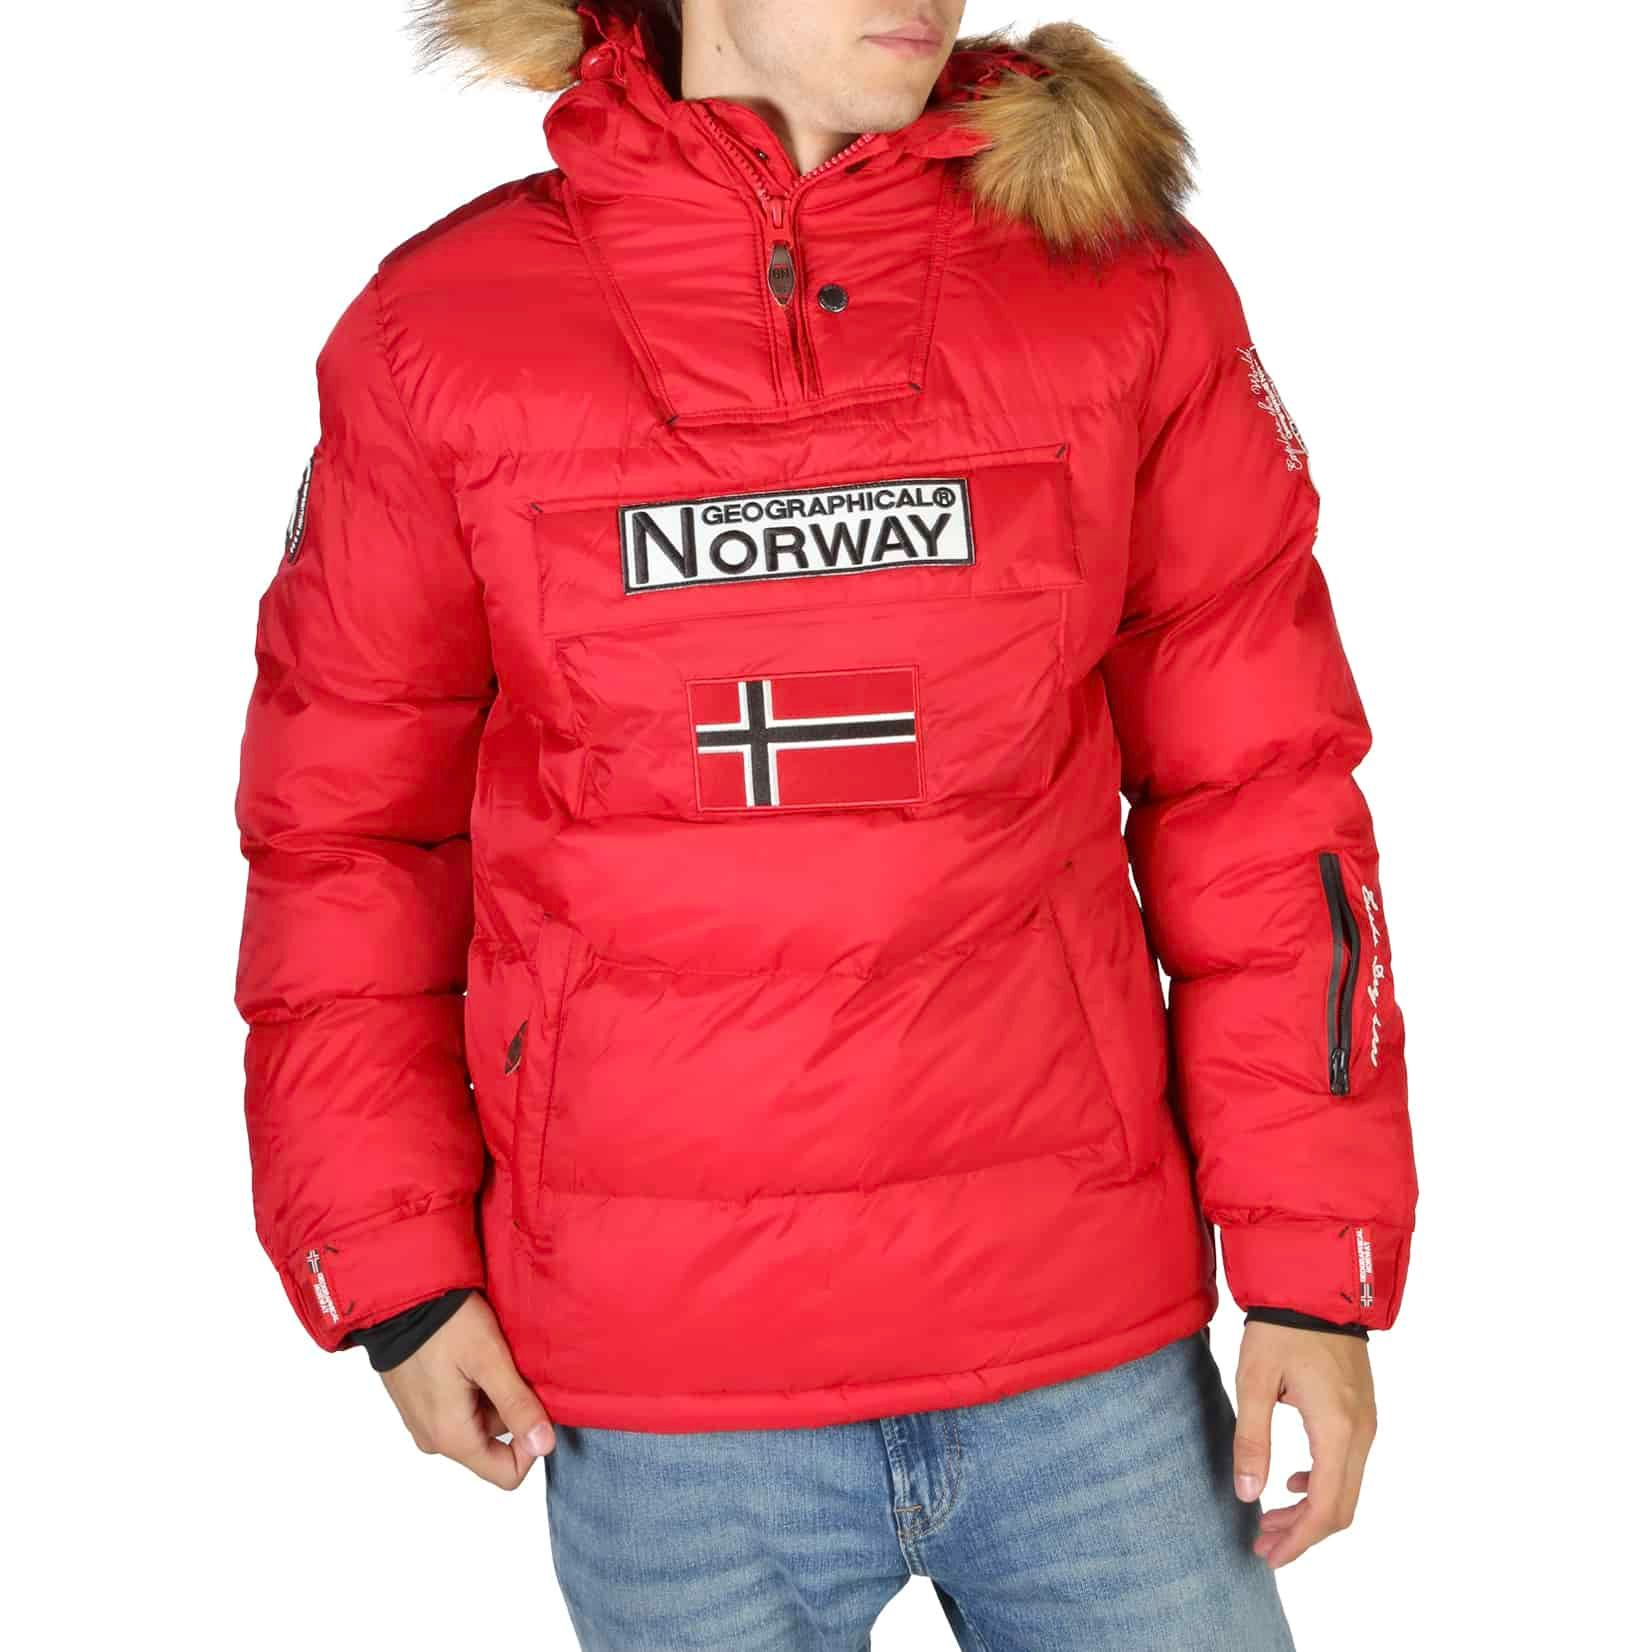 Geographical Norway – Bilboquet Man Red